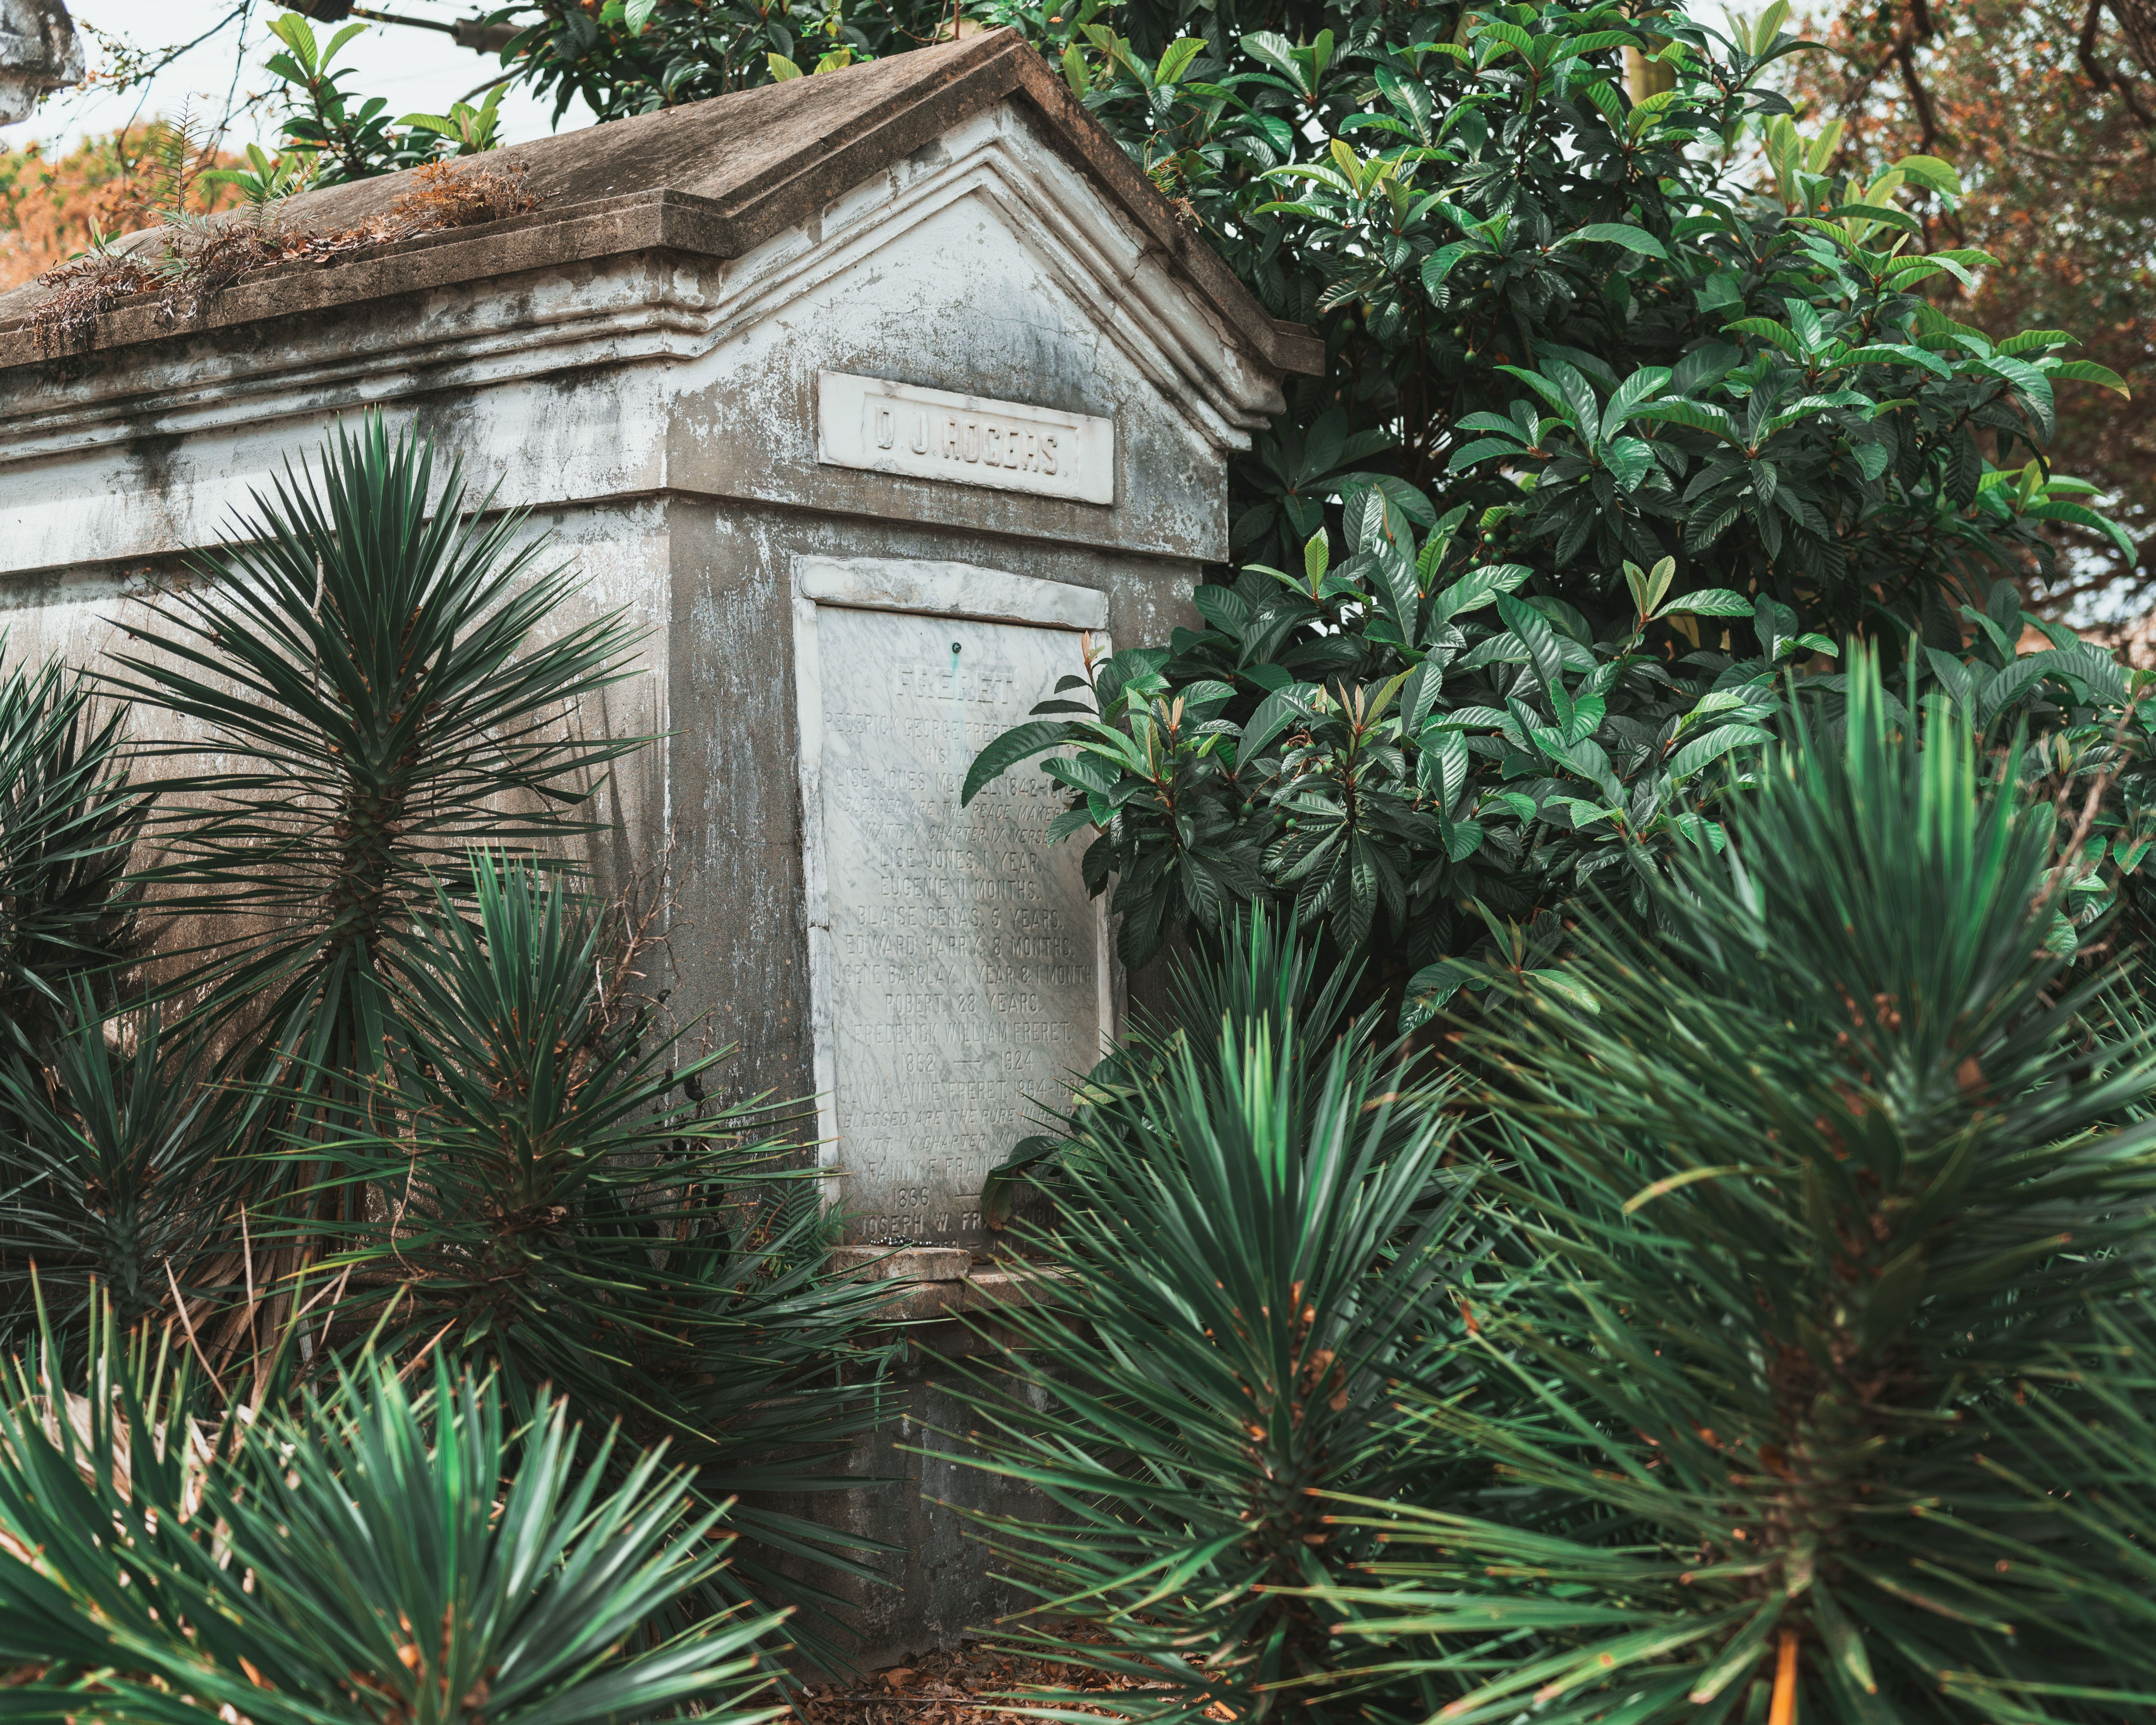 A tomb in a cemetery in New Orleans